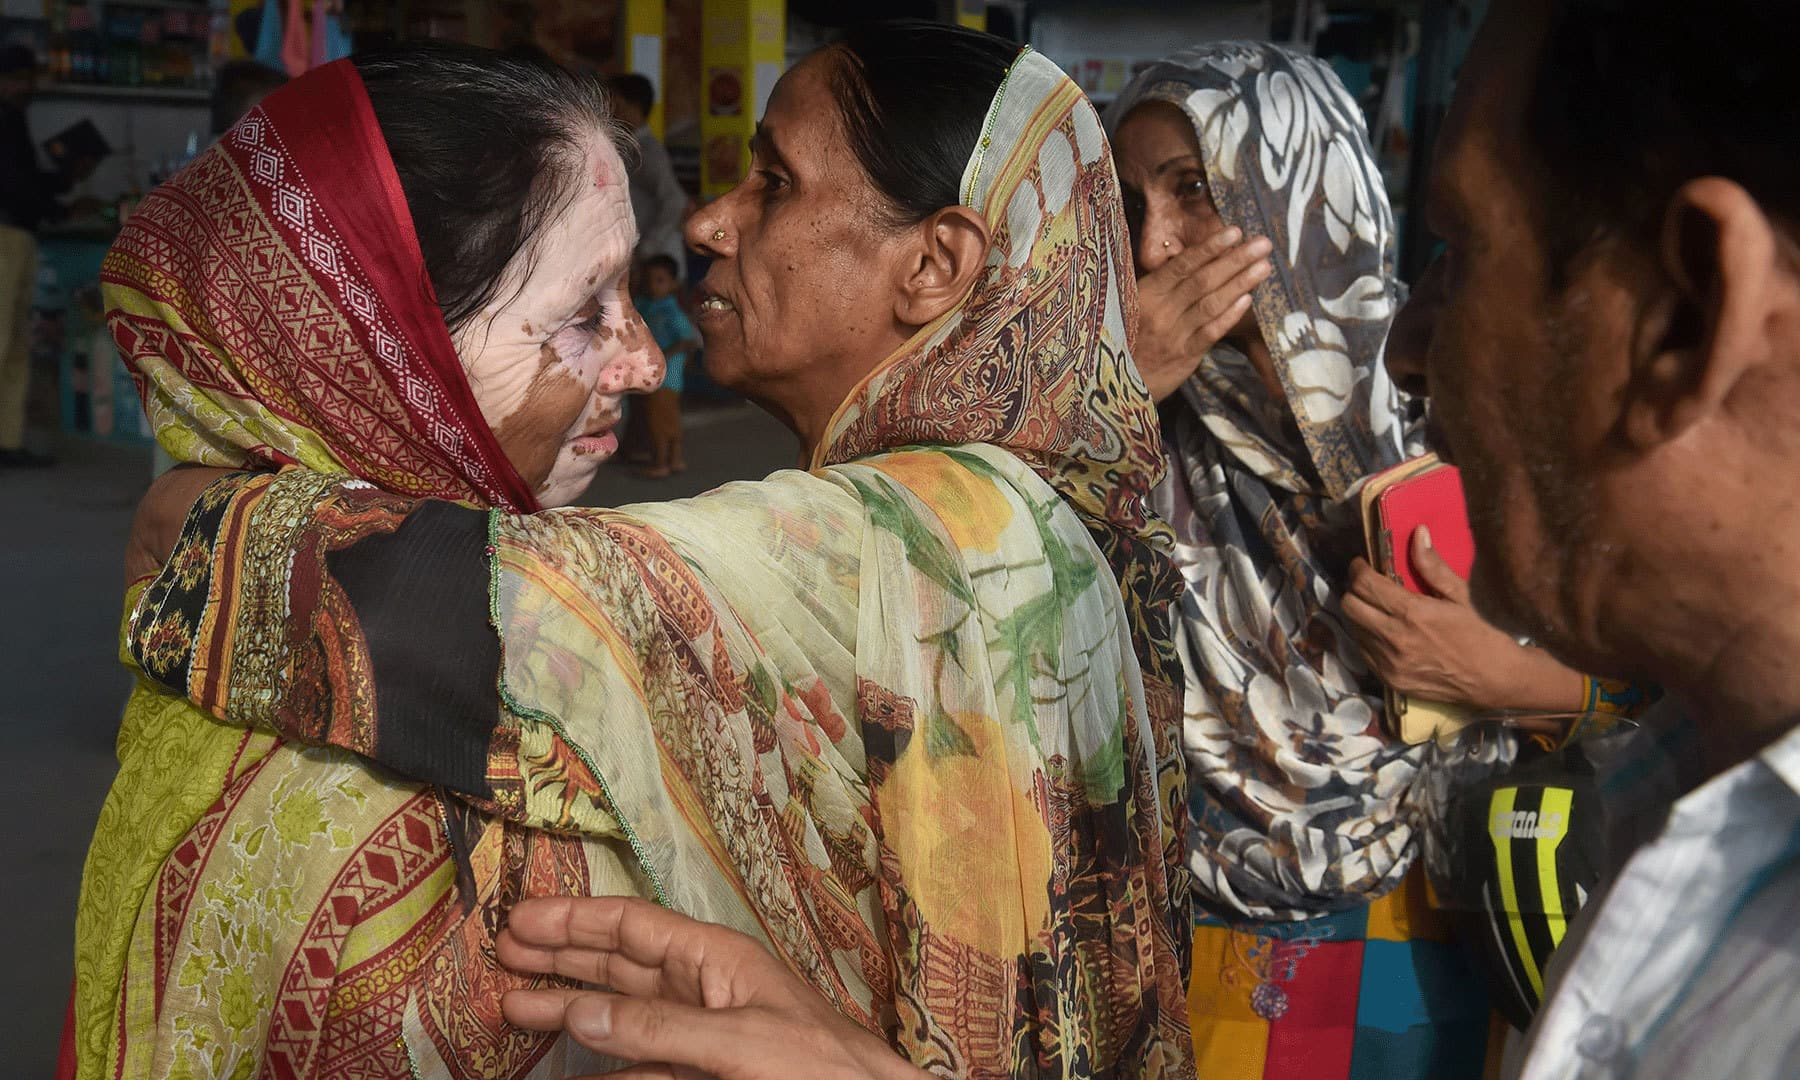 A Pakistani woman (C) embraces her Indian relative (L) ahead of her departure to India via the Samjhota Express train at the railway station in Lahore on August 8, 2019. — AFP